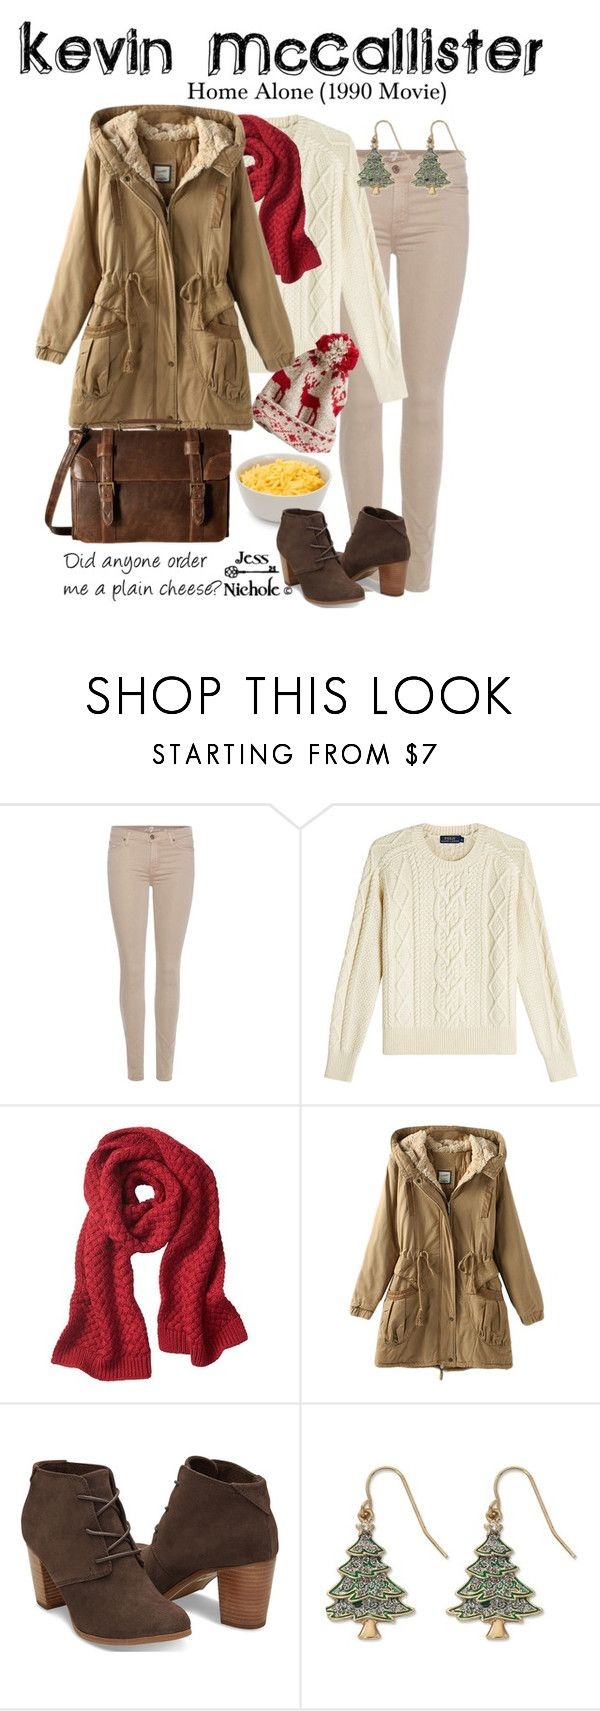 """""""Kevin McCallister"""" by jess-nichole ❤ liked on Polyvore featuring 7 For All Mankind, Polo Ralph Lauren, Banana Republic, TOMS, Kim Rogers and Scully"""